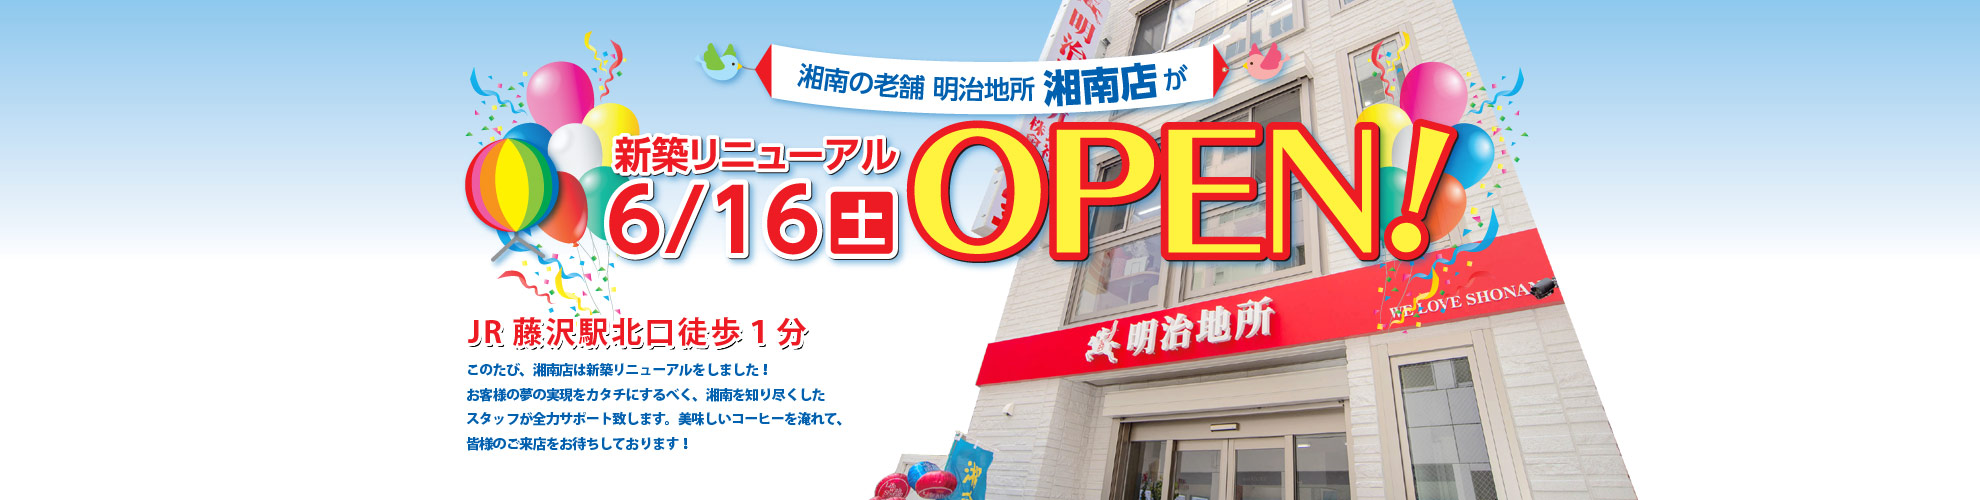 Syounan office new reopening!